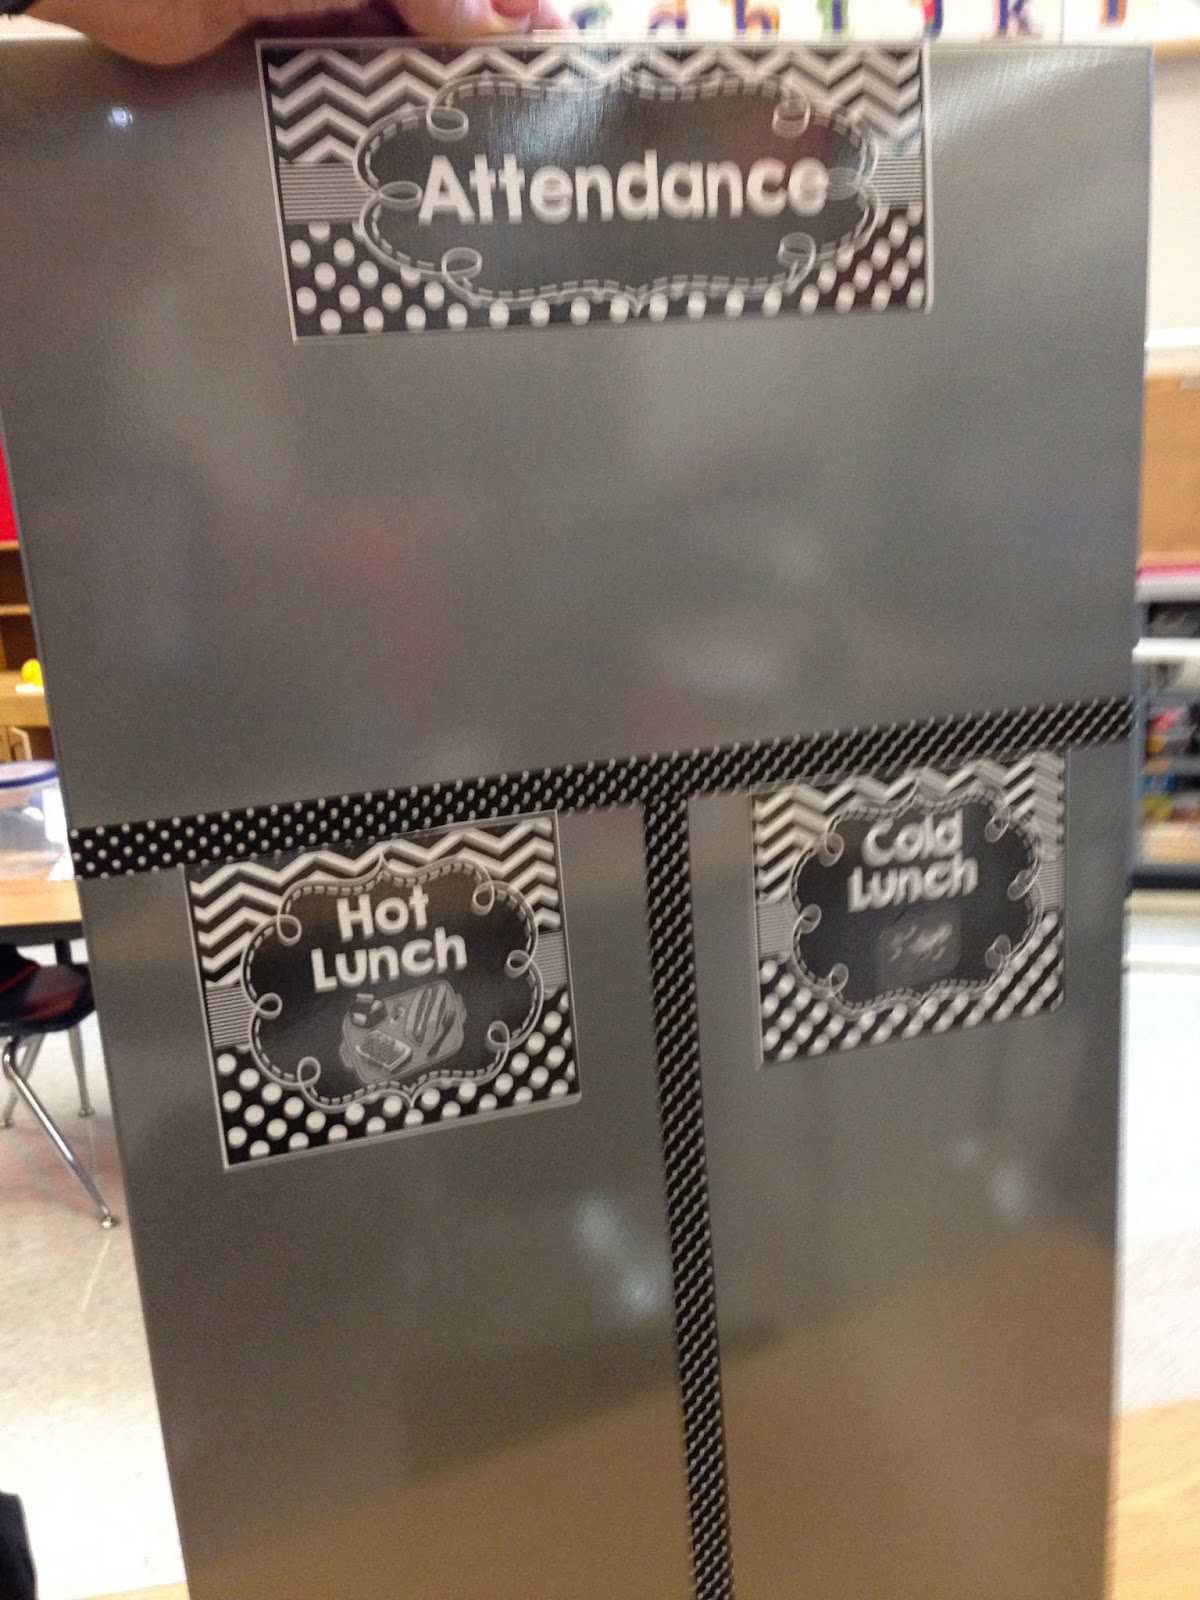 attendance boards, lunch count board, student check in, kindergarten lunch